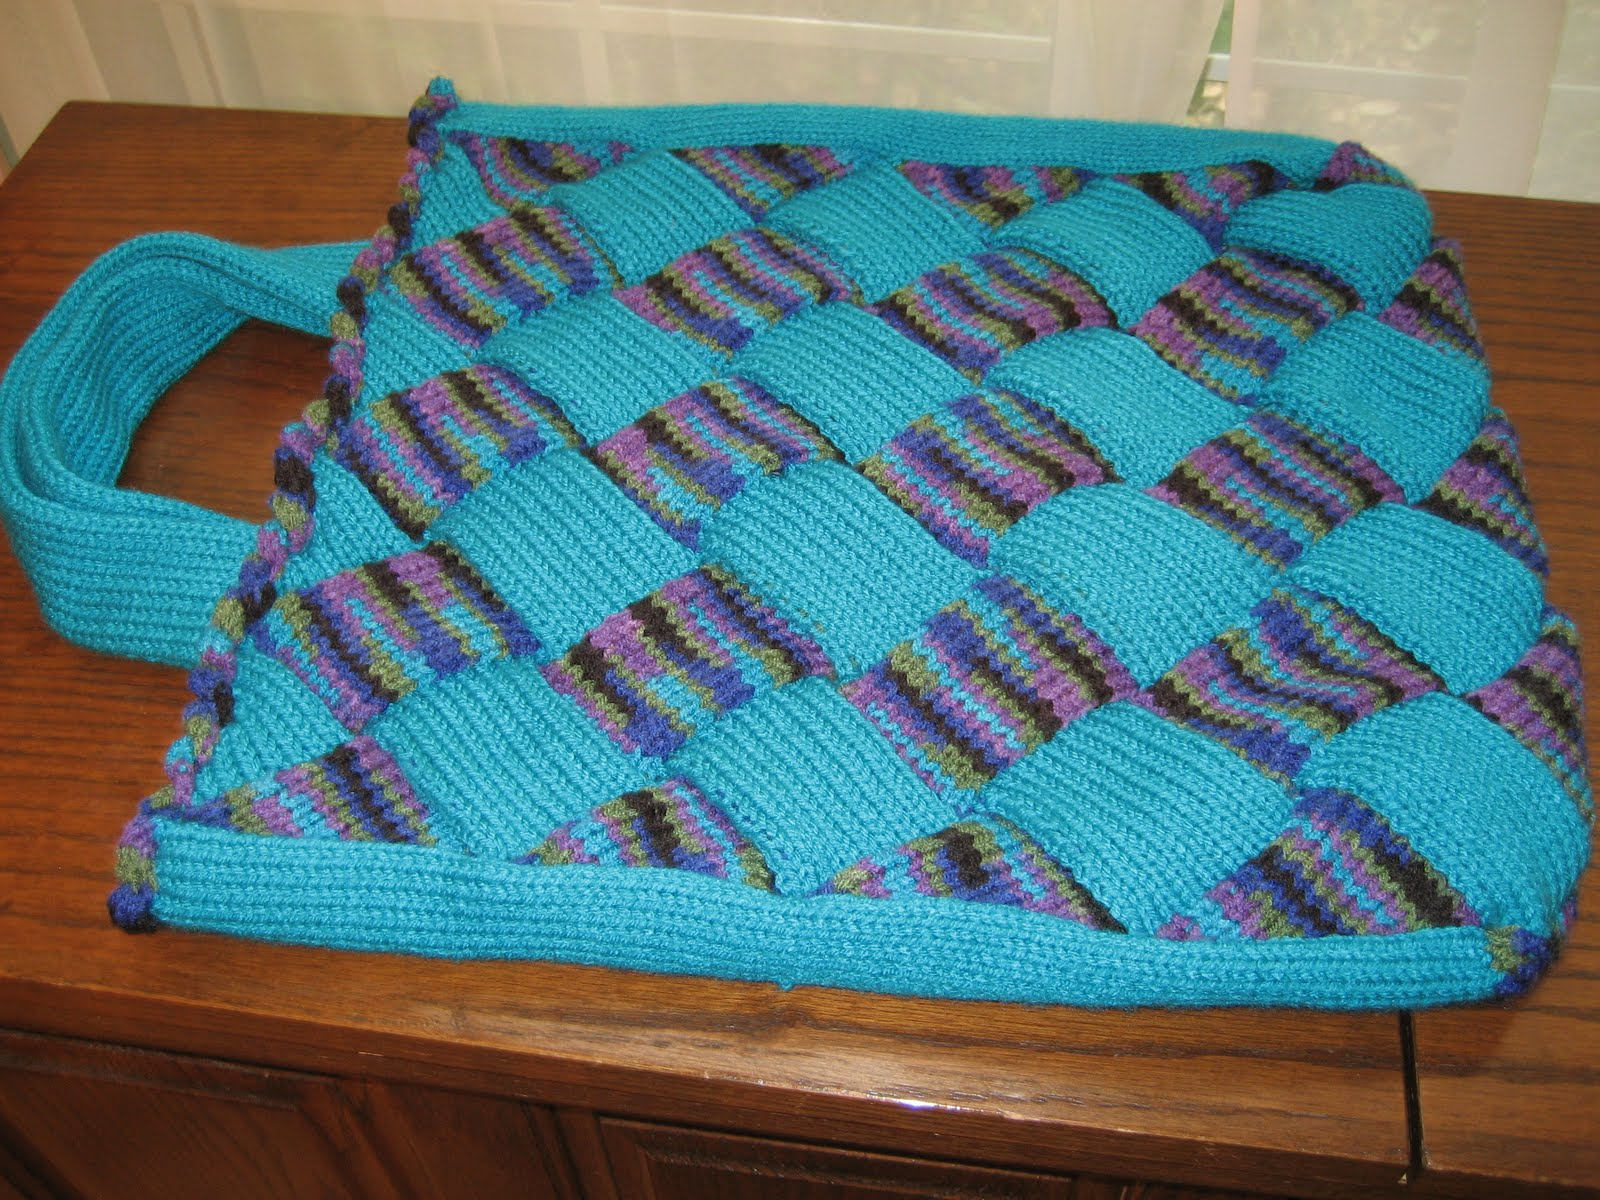 Diana natters on... about machine knitting: New Videos Today - Entrelac Intro...